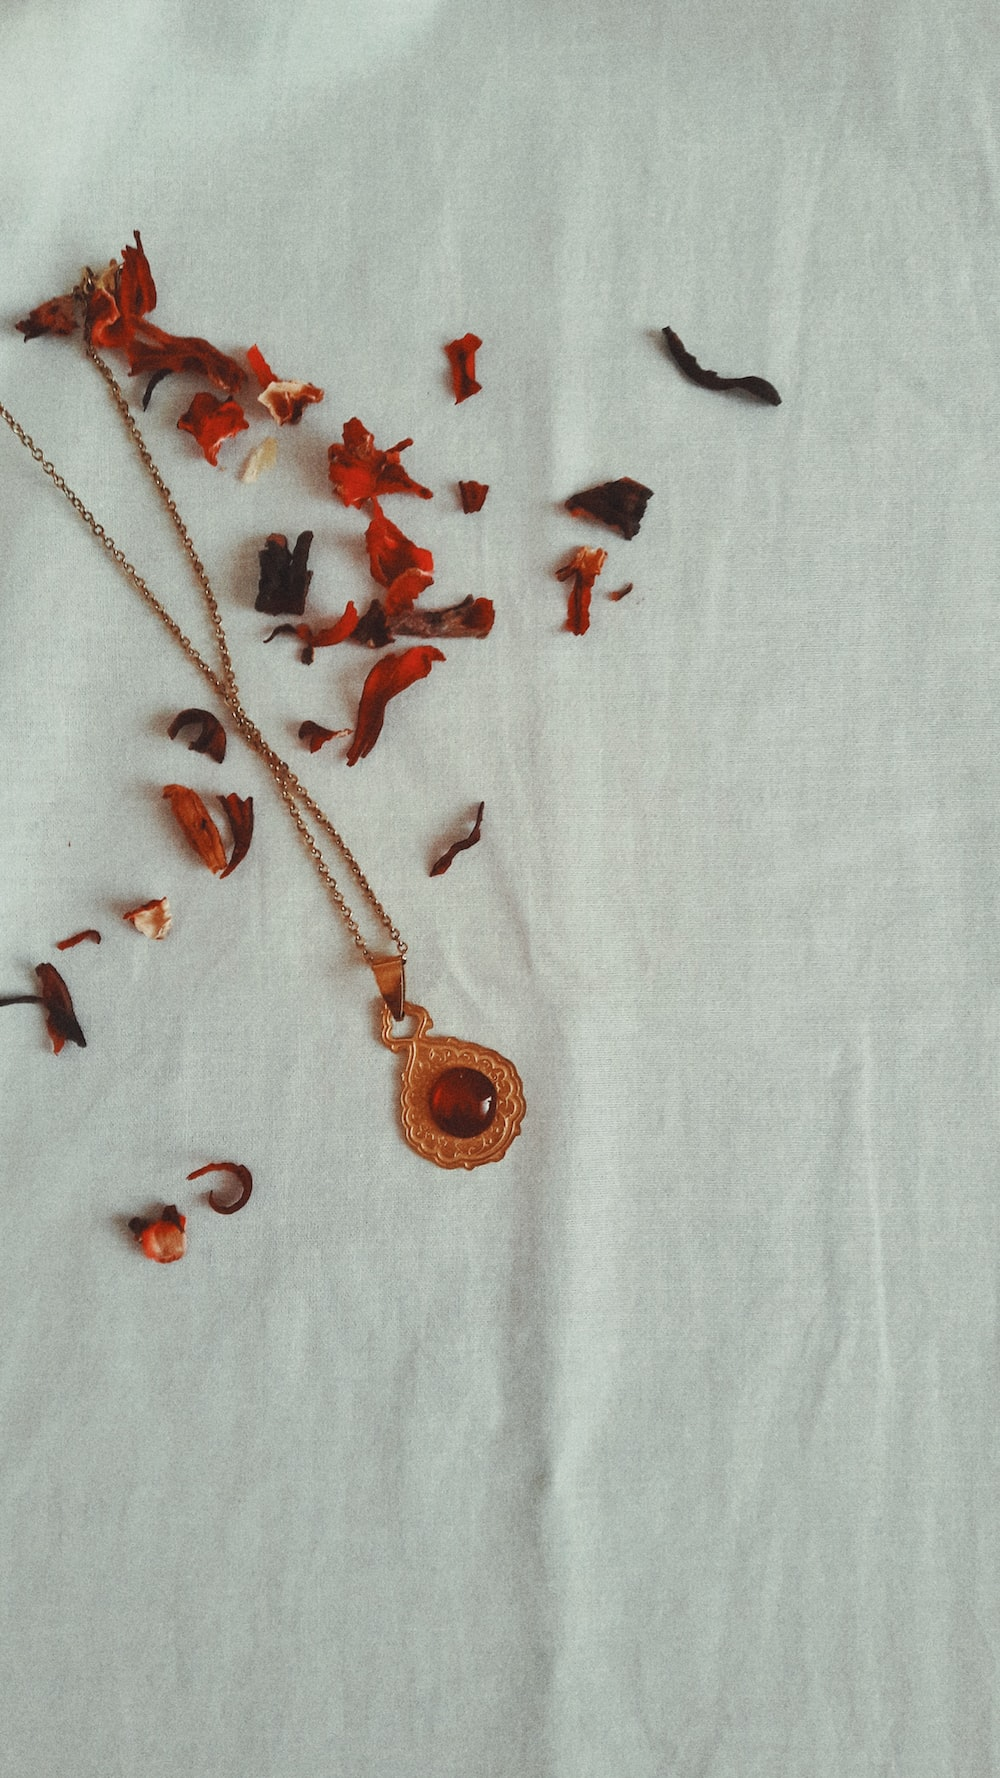 red gemstone pendant necklace on white textile